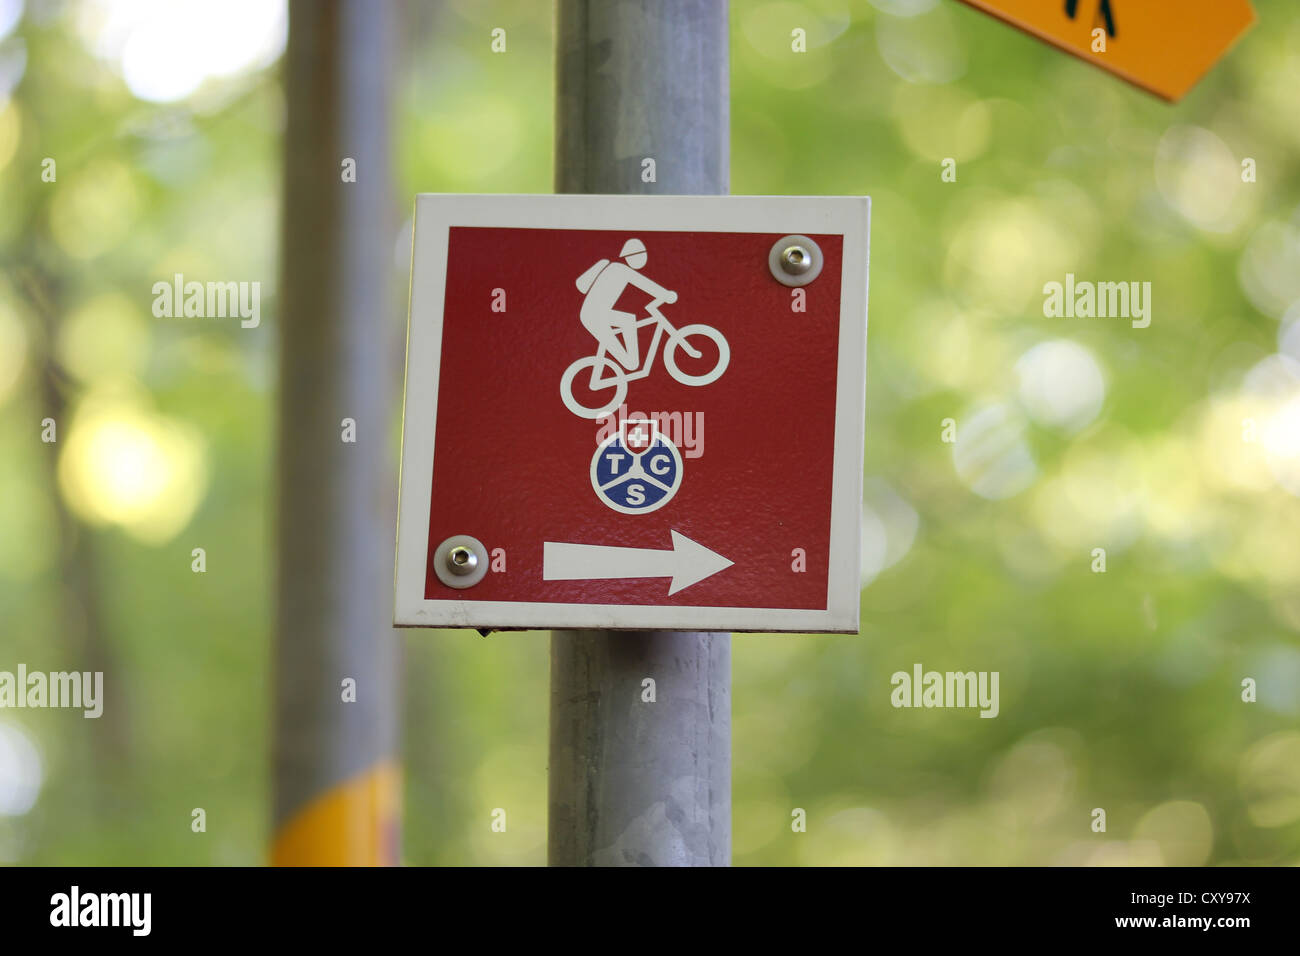 tracking sign, mountains, walking, climbing, mtb, mountain bike, trail, photoarkive - Stock Image